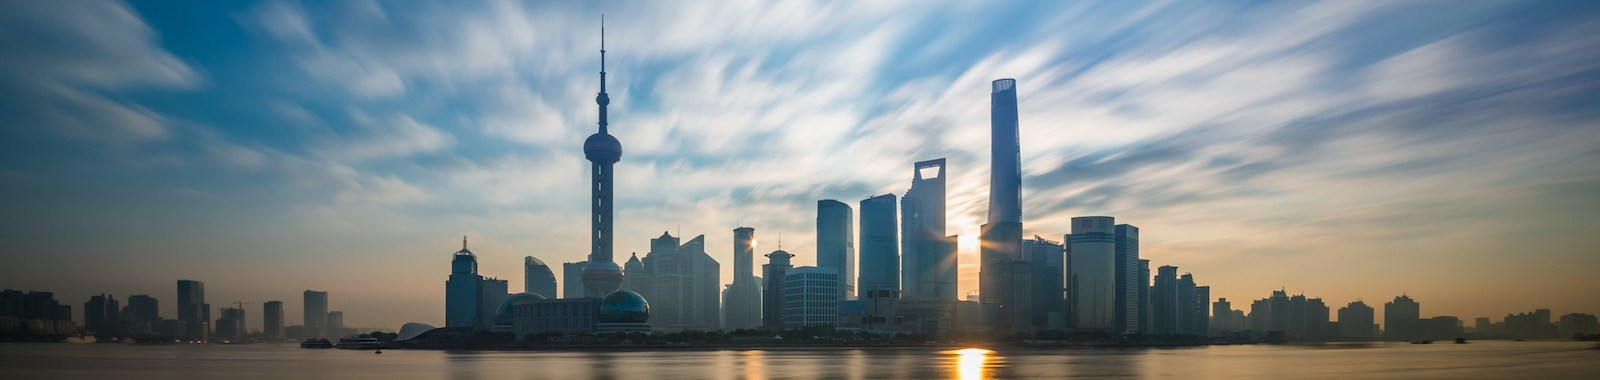 Sunrise in Pudong district of Shanghai, China